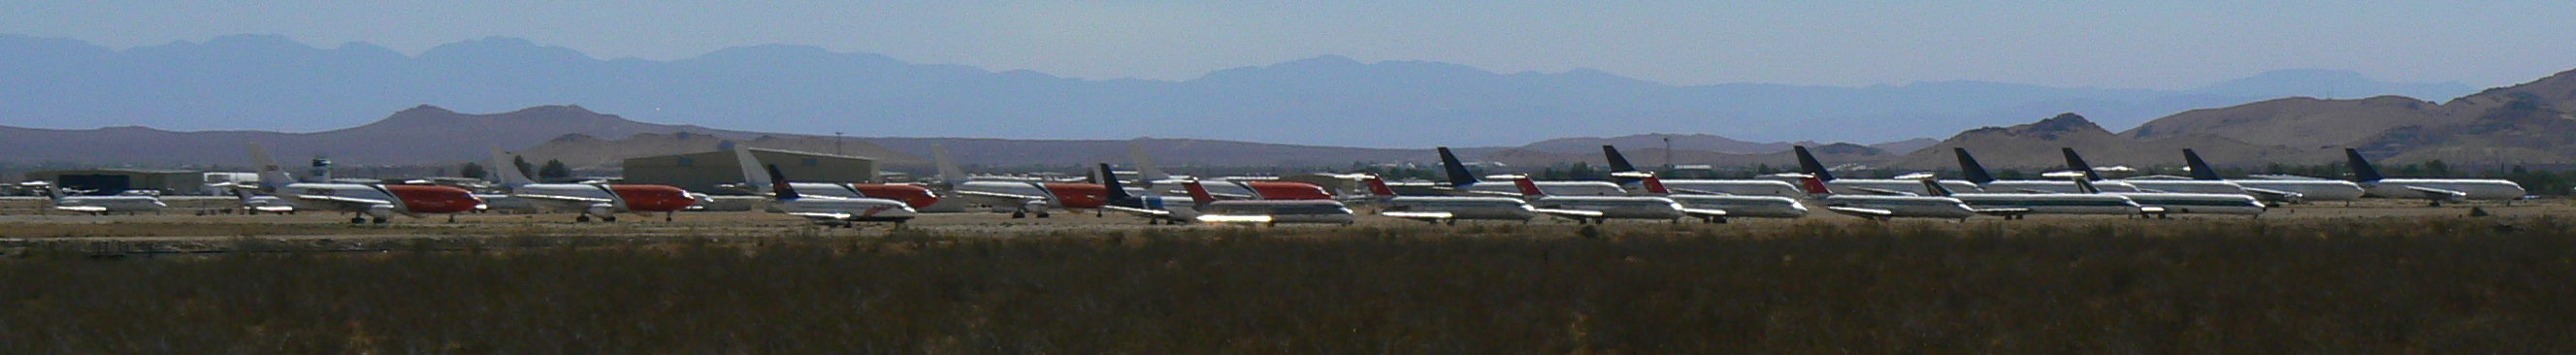 Mojave mothballed 9-22-2009